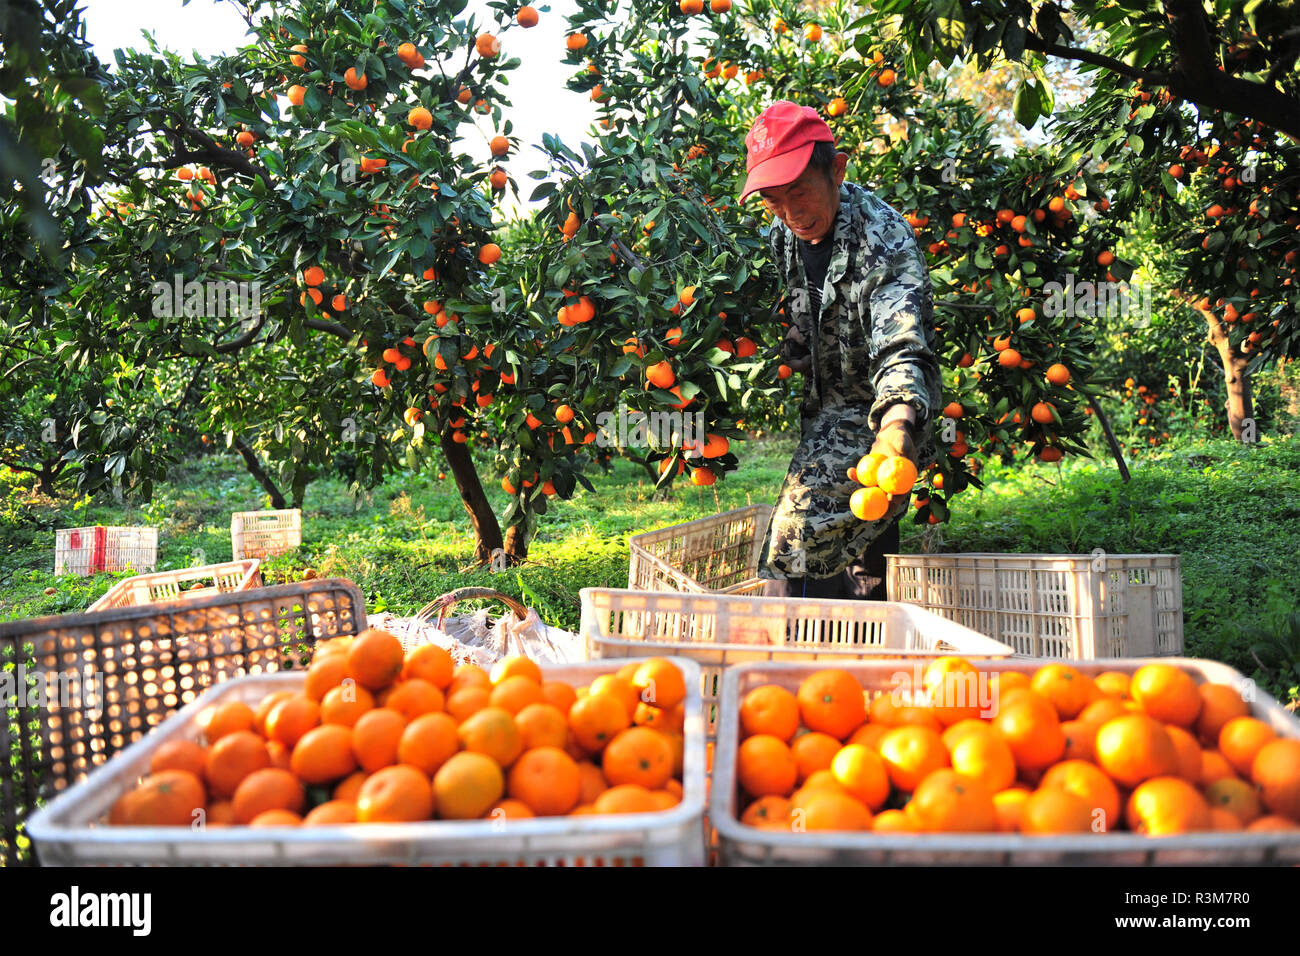 Harvesting Russia Stock Photos & Harvesting Russia Stock Images - Alamy